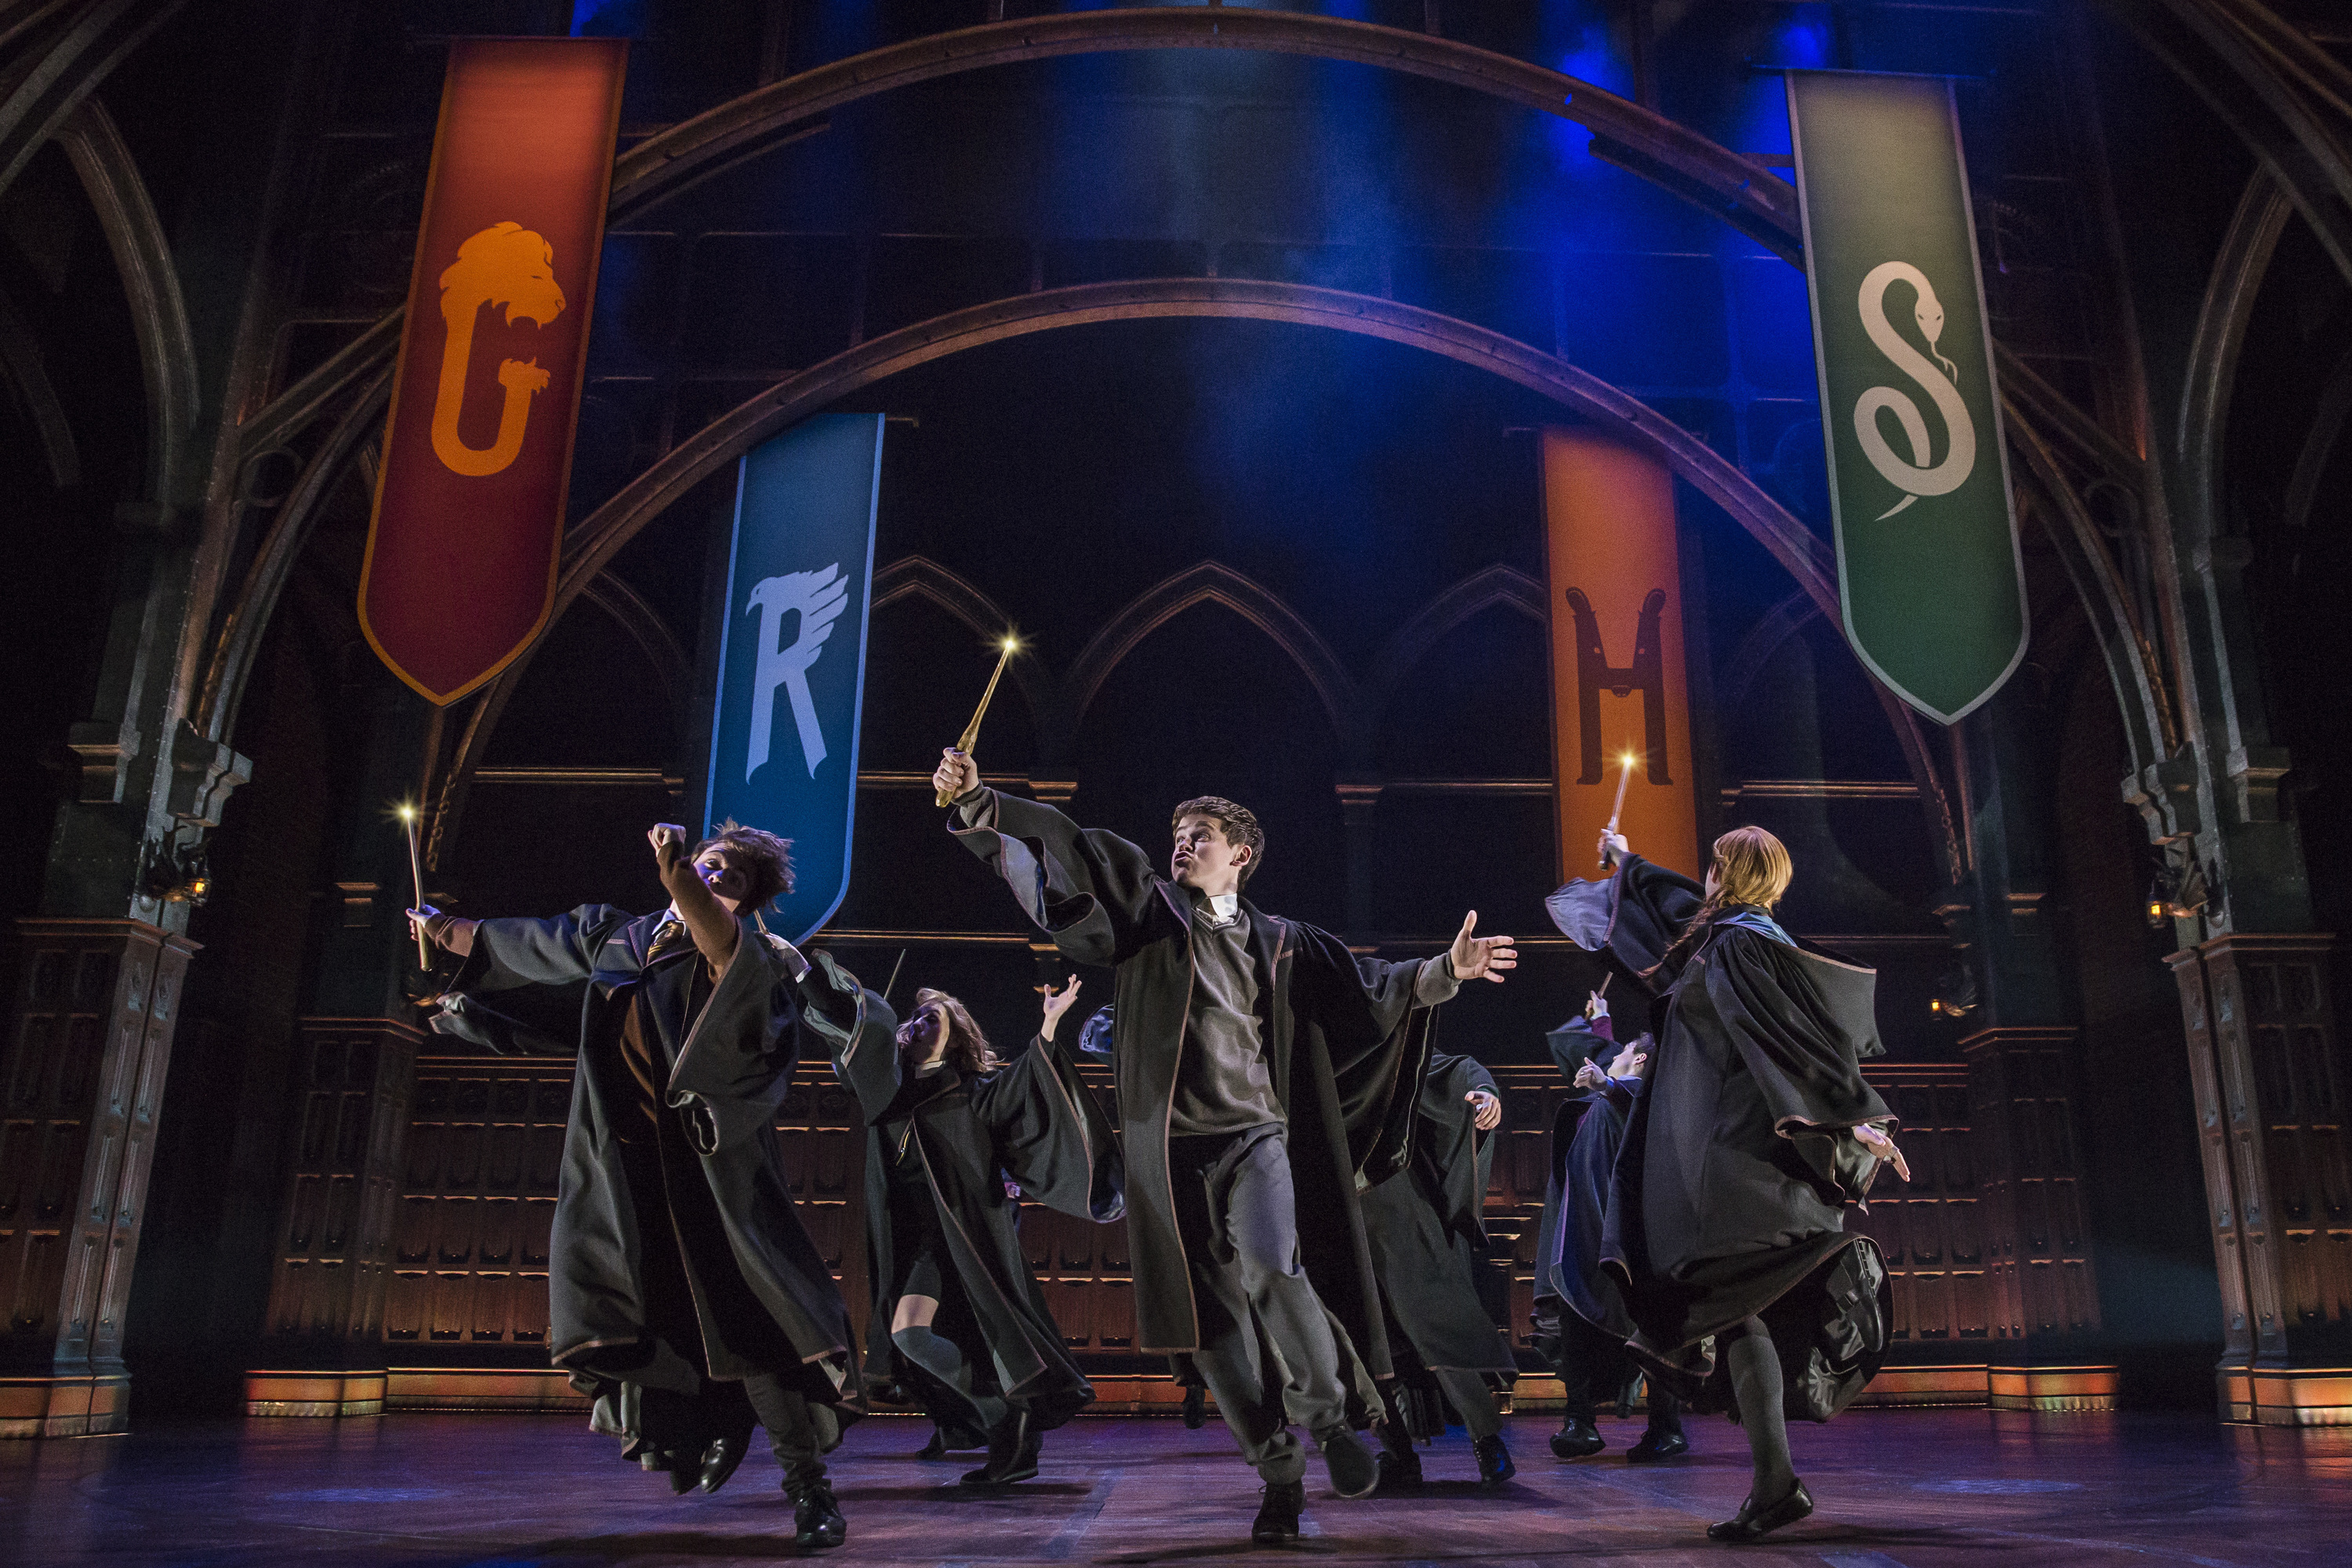 Part of the play of 'Harry Potter and The Cursed Child'.